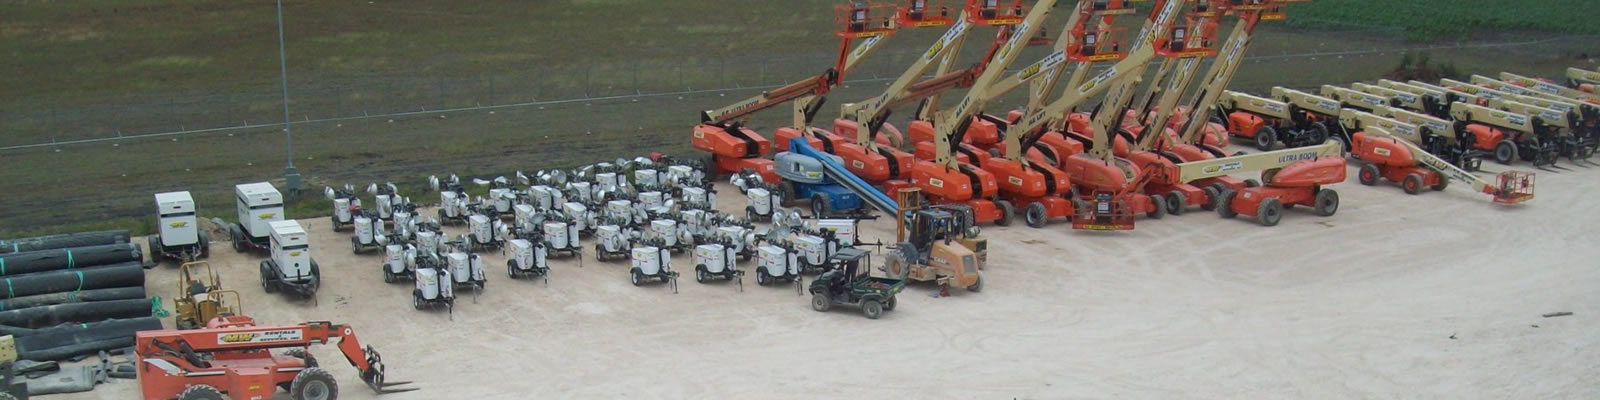 Our company specializes in equipment rentals and oil field services.